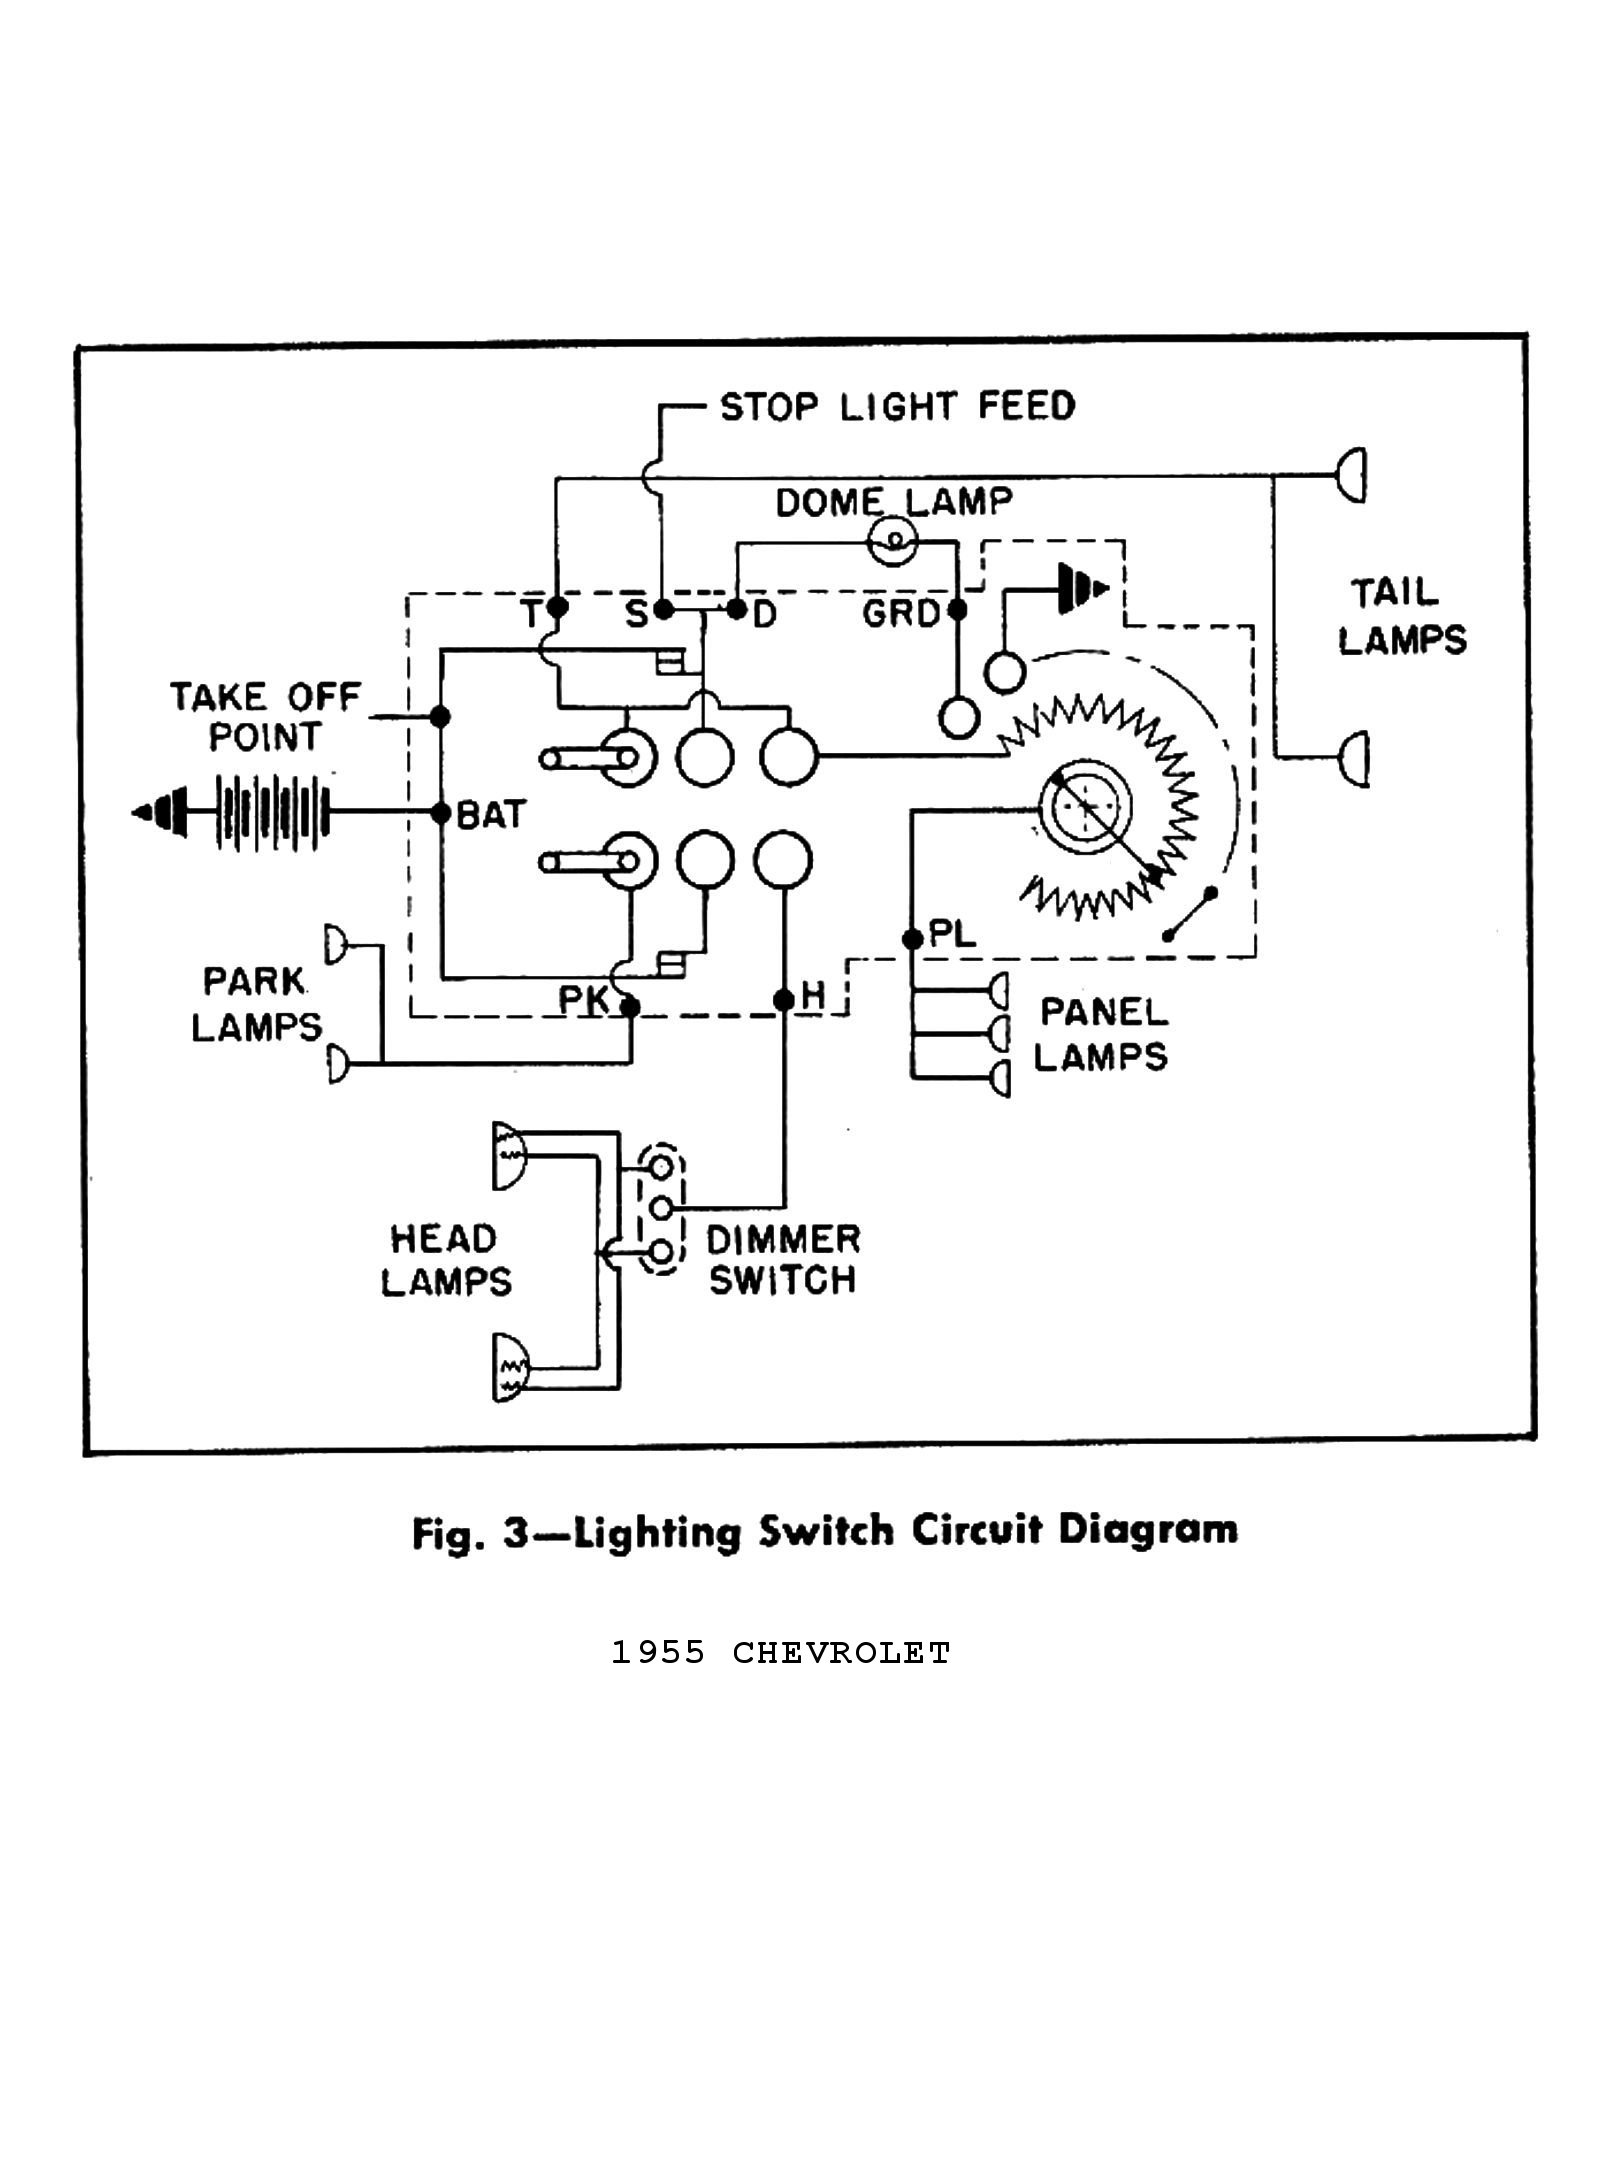 55 chevy pickup fuse box in wirdig diagram moreover 1955 chevy wiring diagram furthermore 1957 chevy